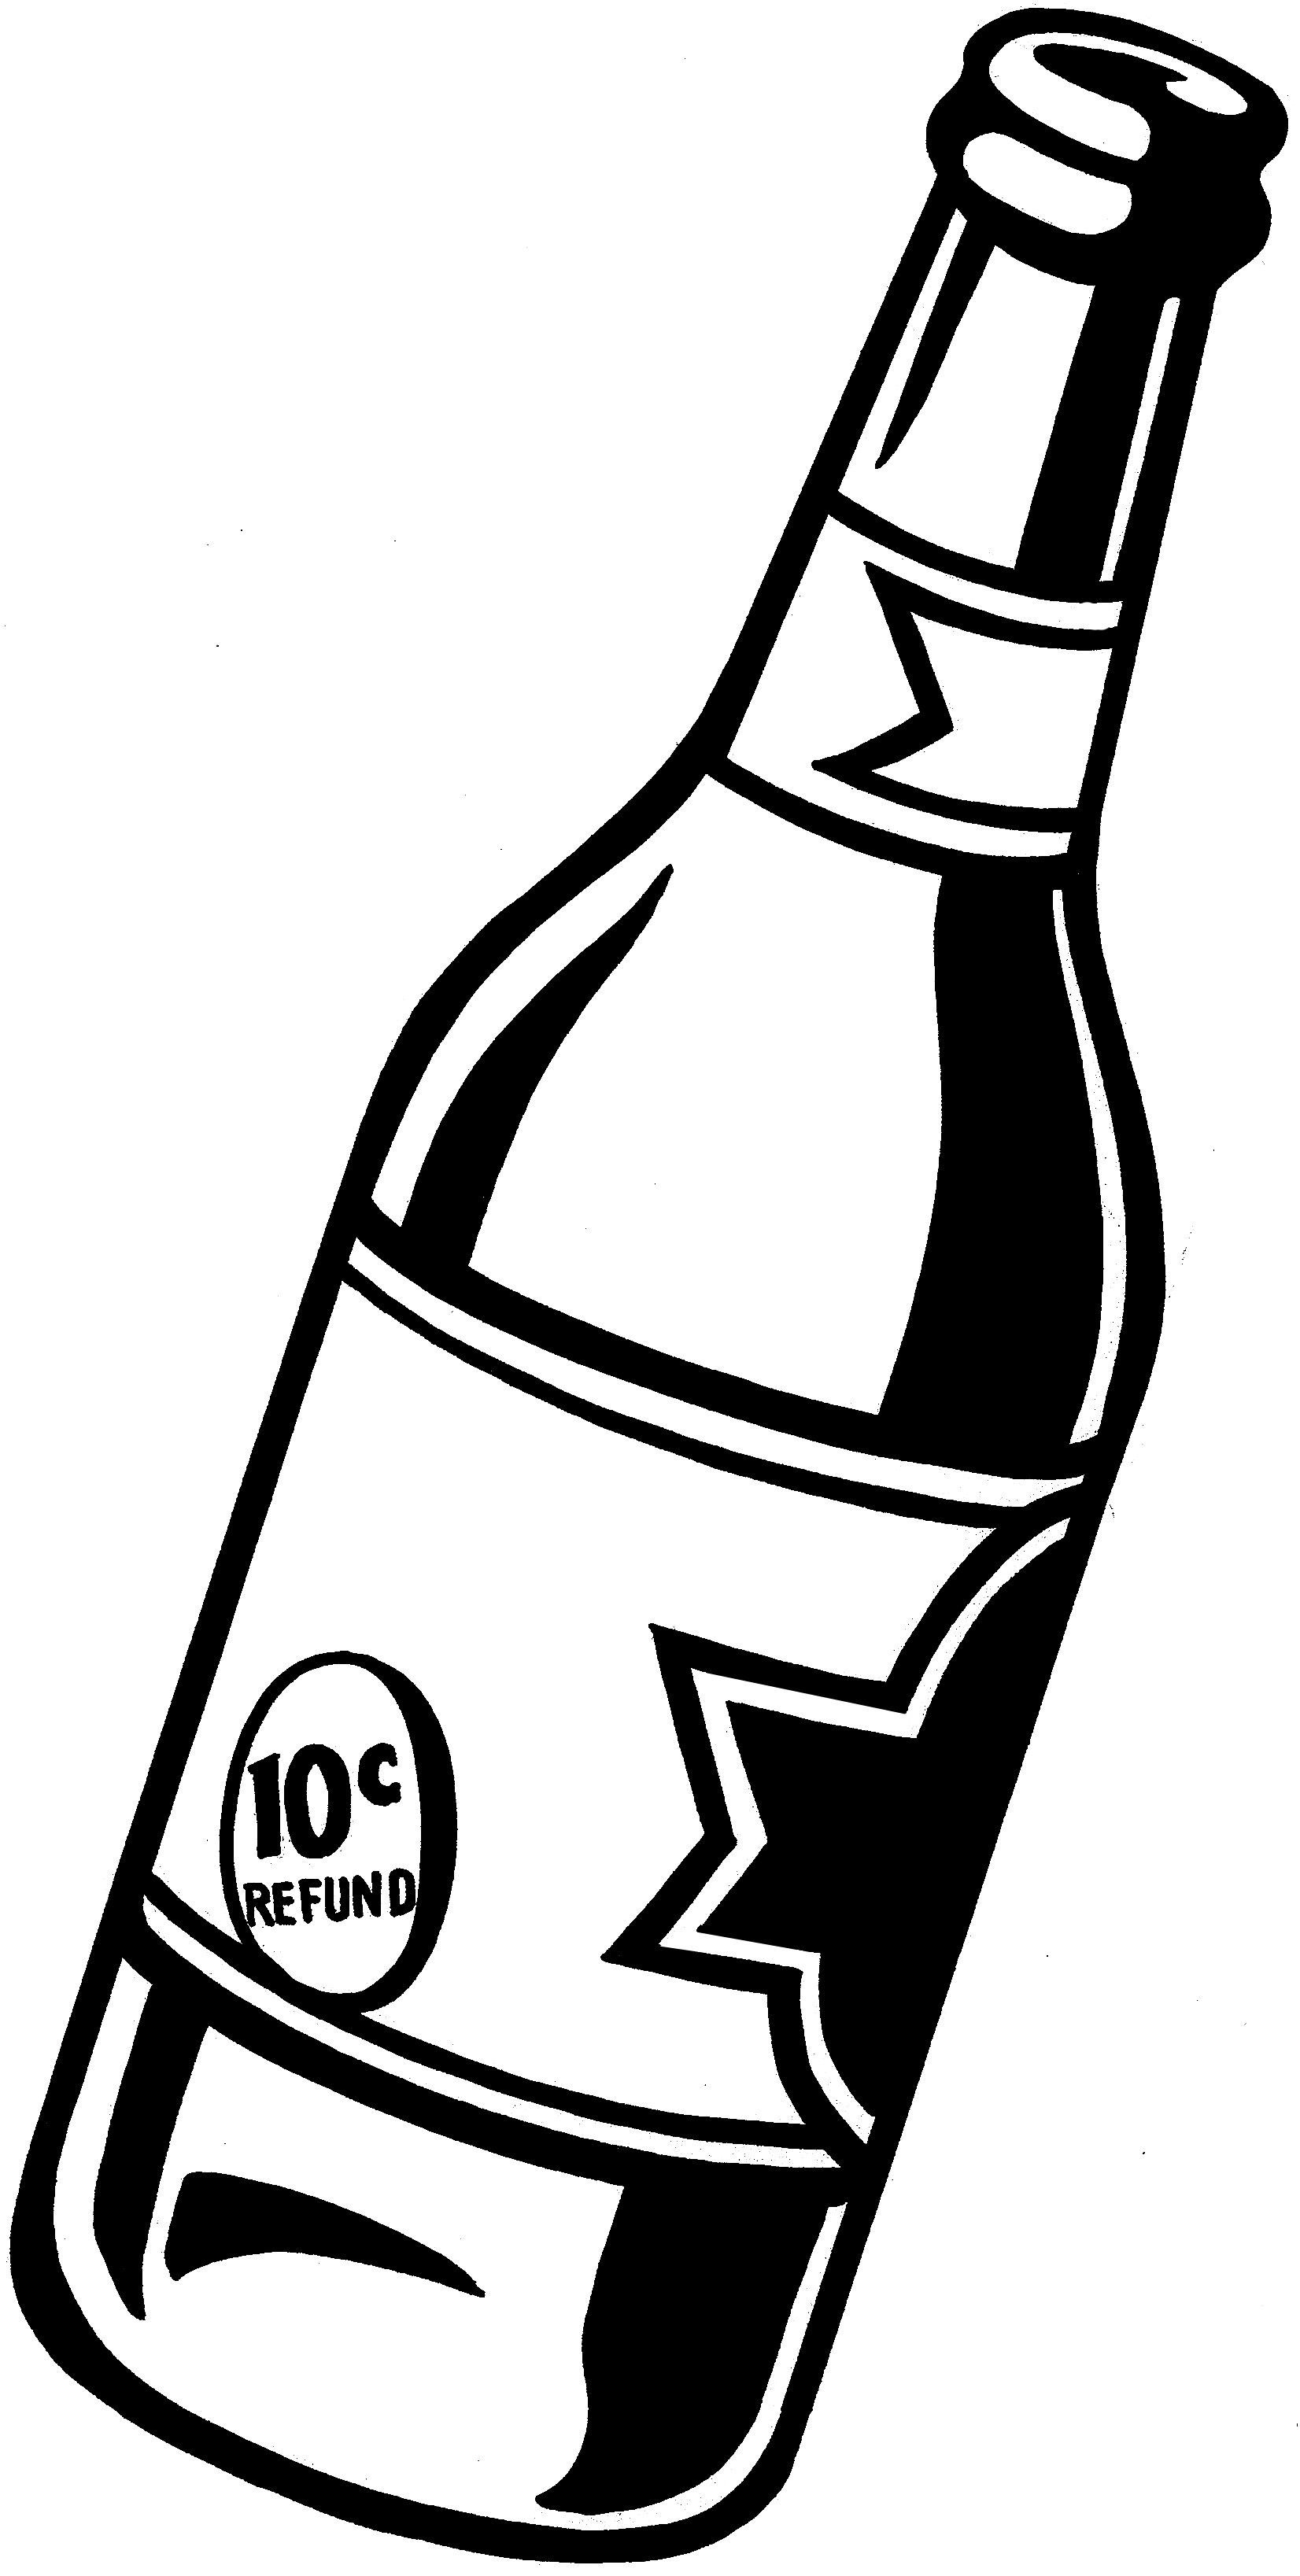 Alcohol bottle clipart black and white picture royalty free library Alcohol bottle clipart black and white 1 » Clipart Portal picture royalty free library